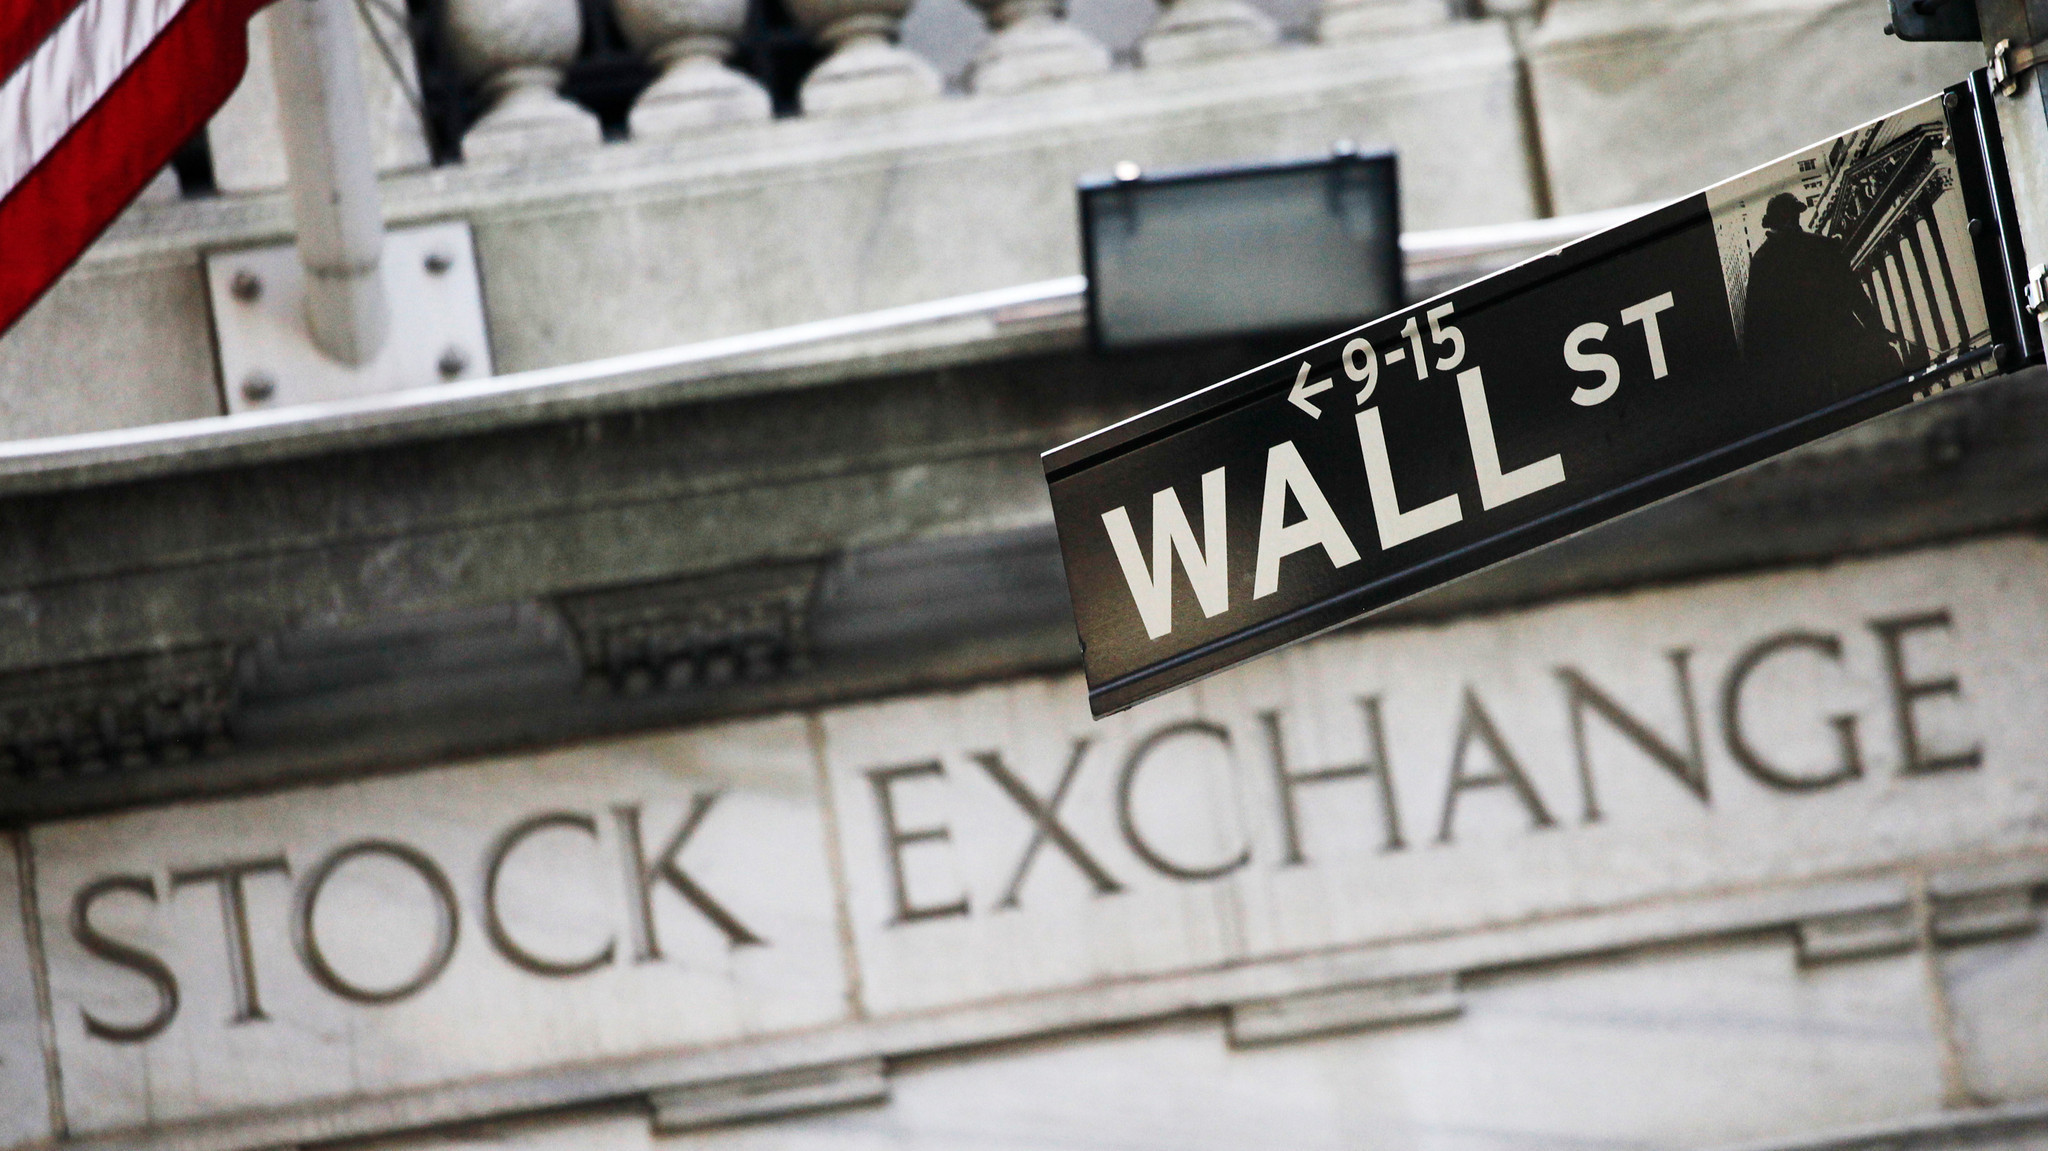 Stocks edge down as presidential election brings uncertainty - LA Times